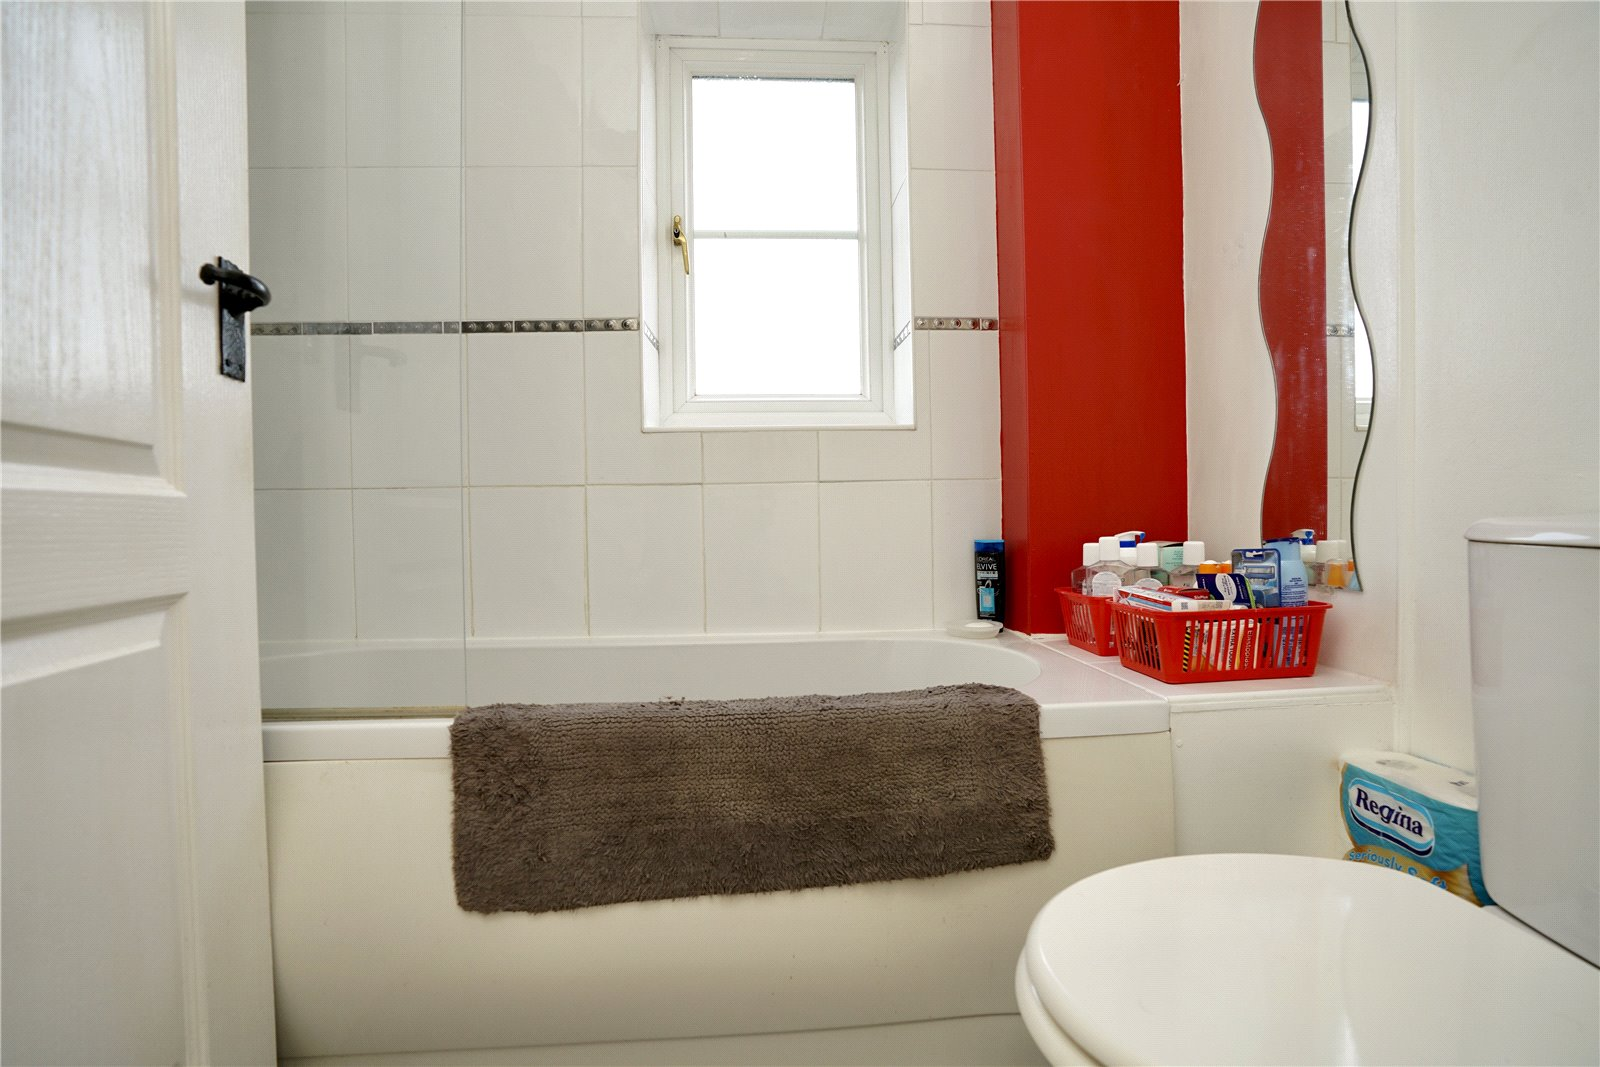 1 bed house for sale in Begwary Close, Eaton Socon  - Property Image 7